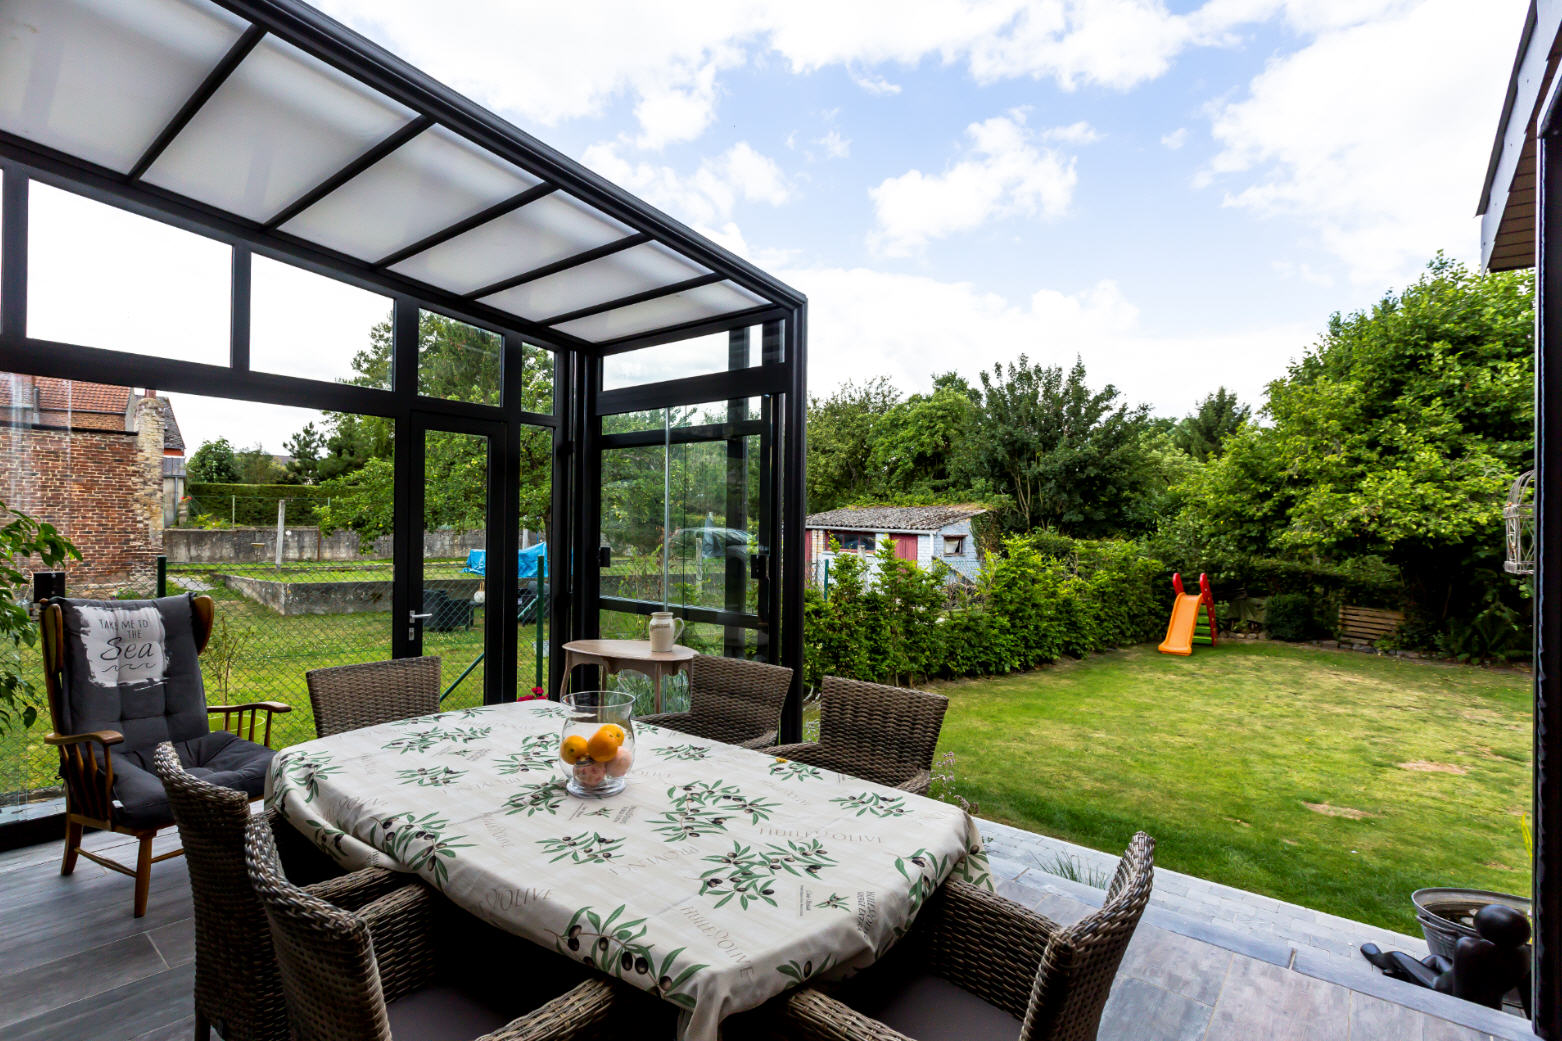 PatioScopic-Residential-Patio-Enclosure-Anthracite-Colour-Open-03